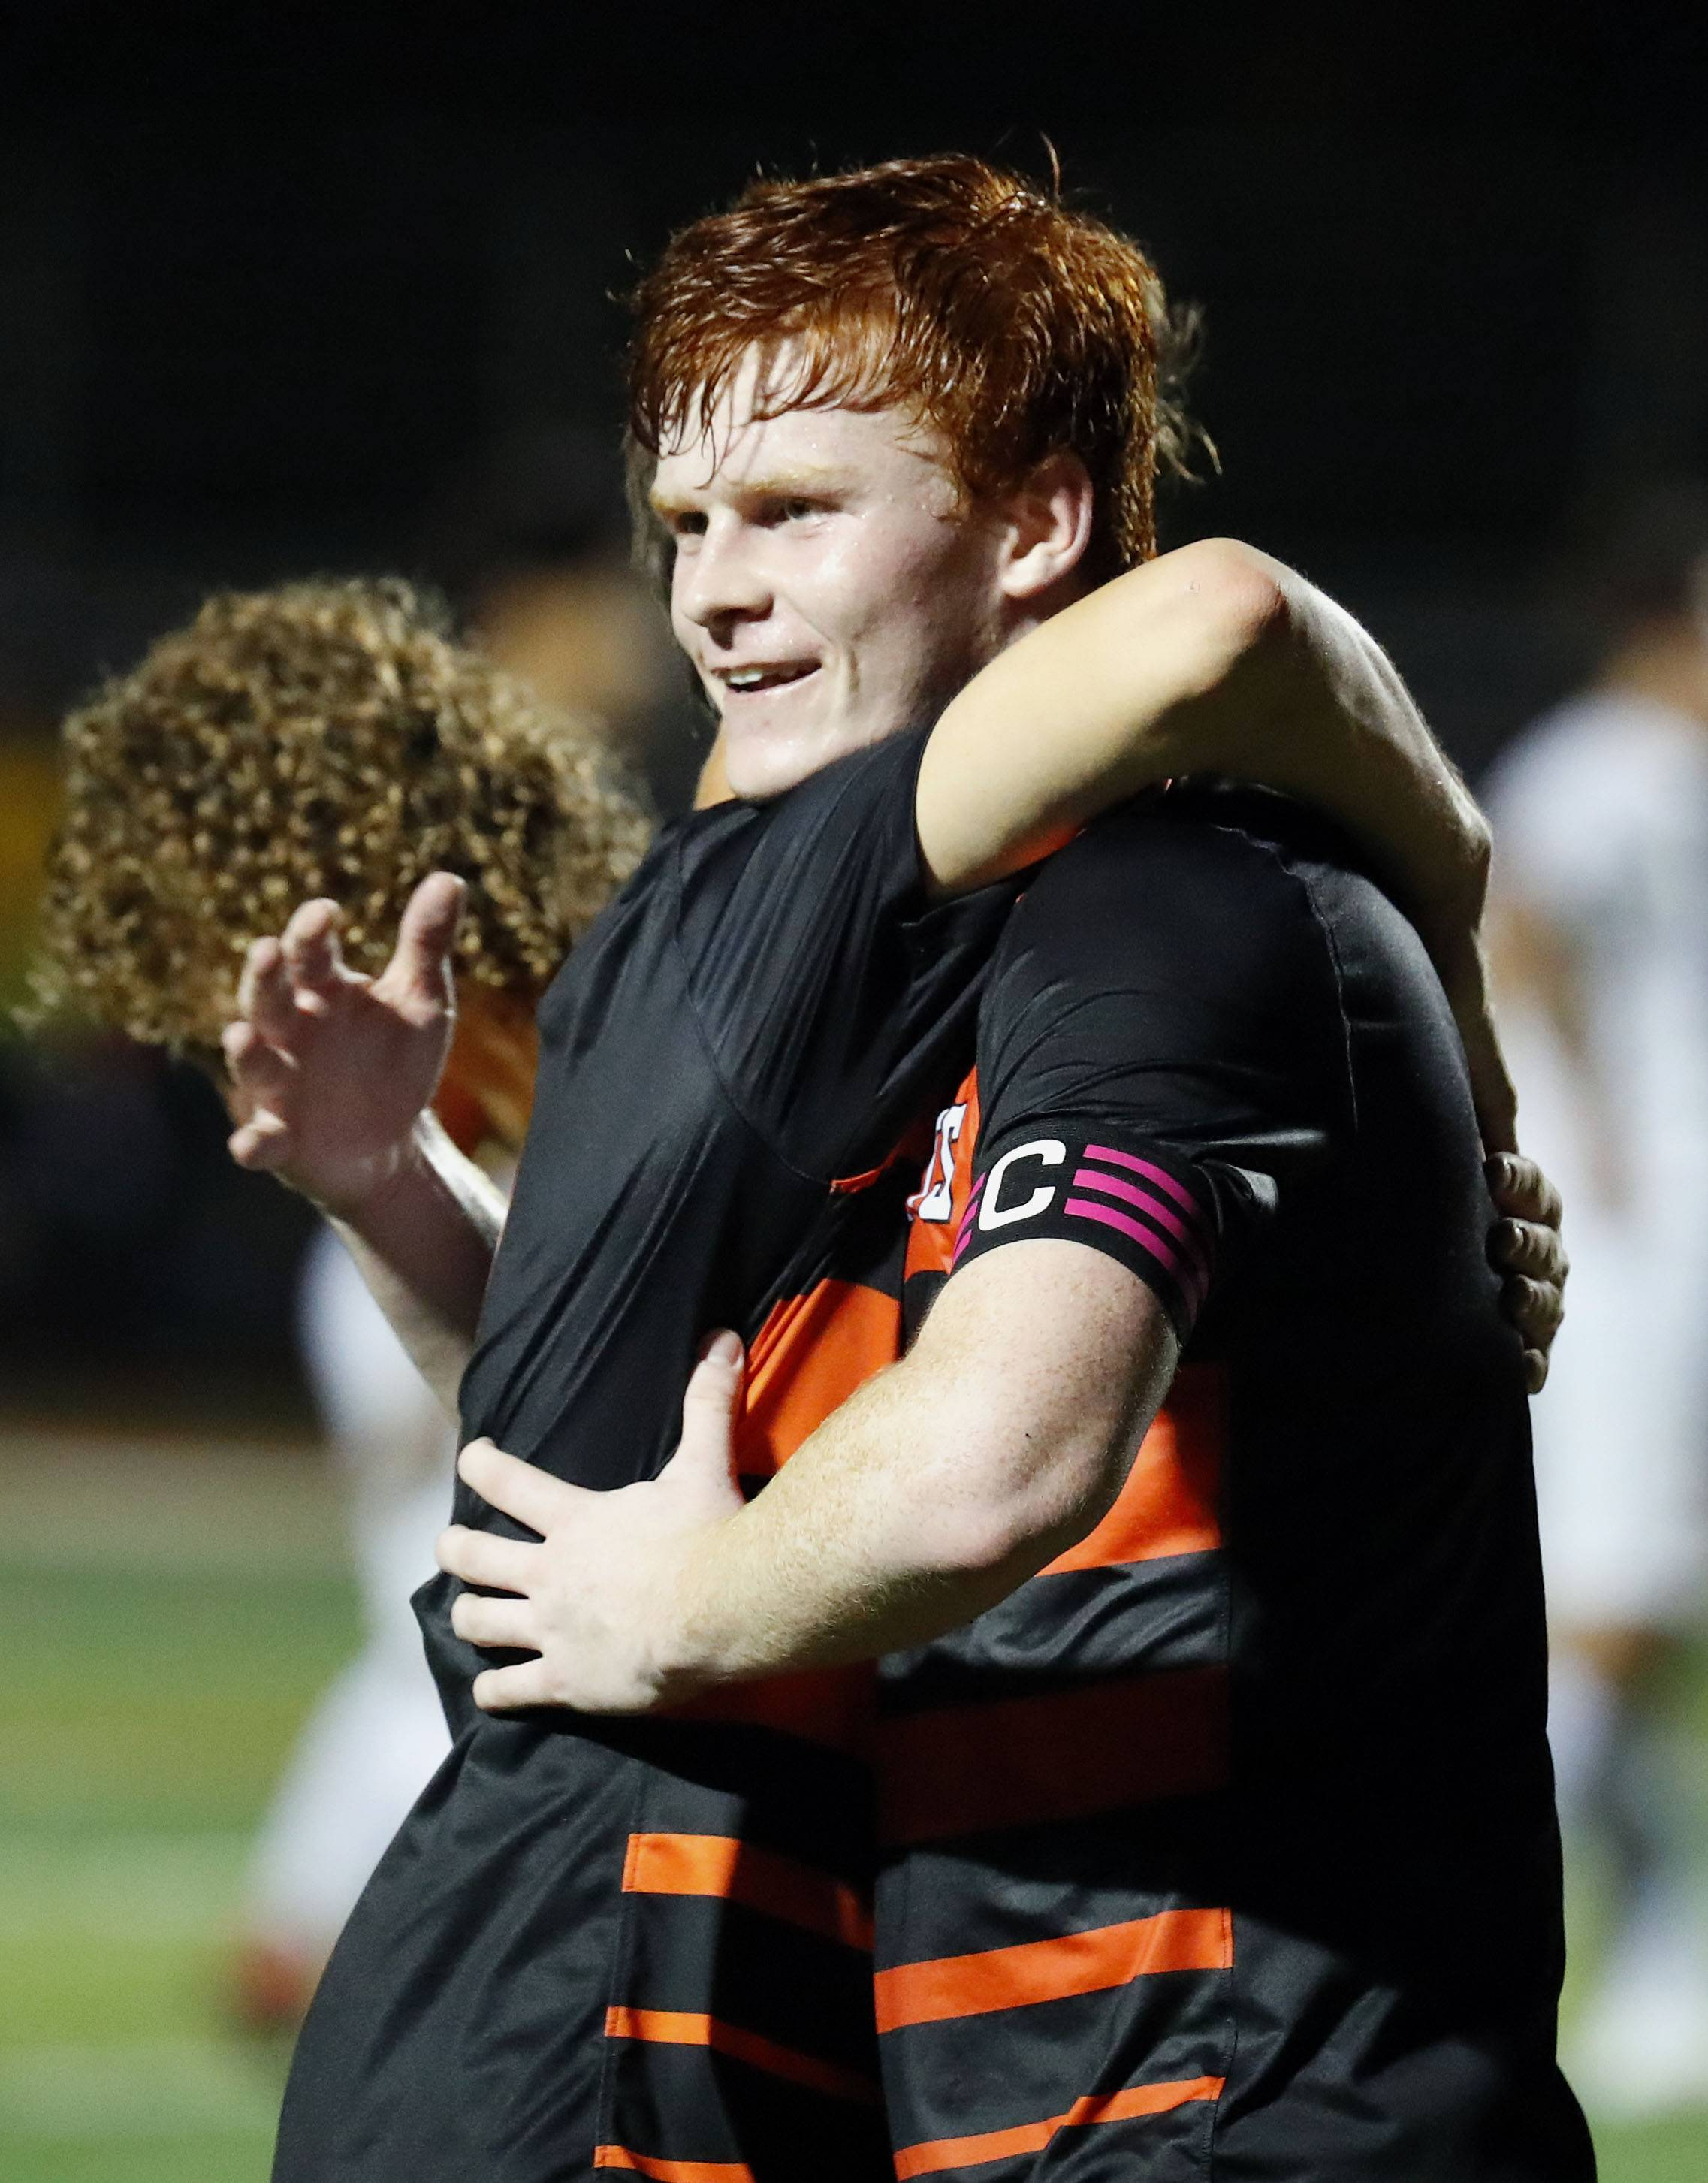 Libertyville's Evan Rasmussen gets a hug after scoring his 50th career goal during their game Tuesday night in Libertyville.